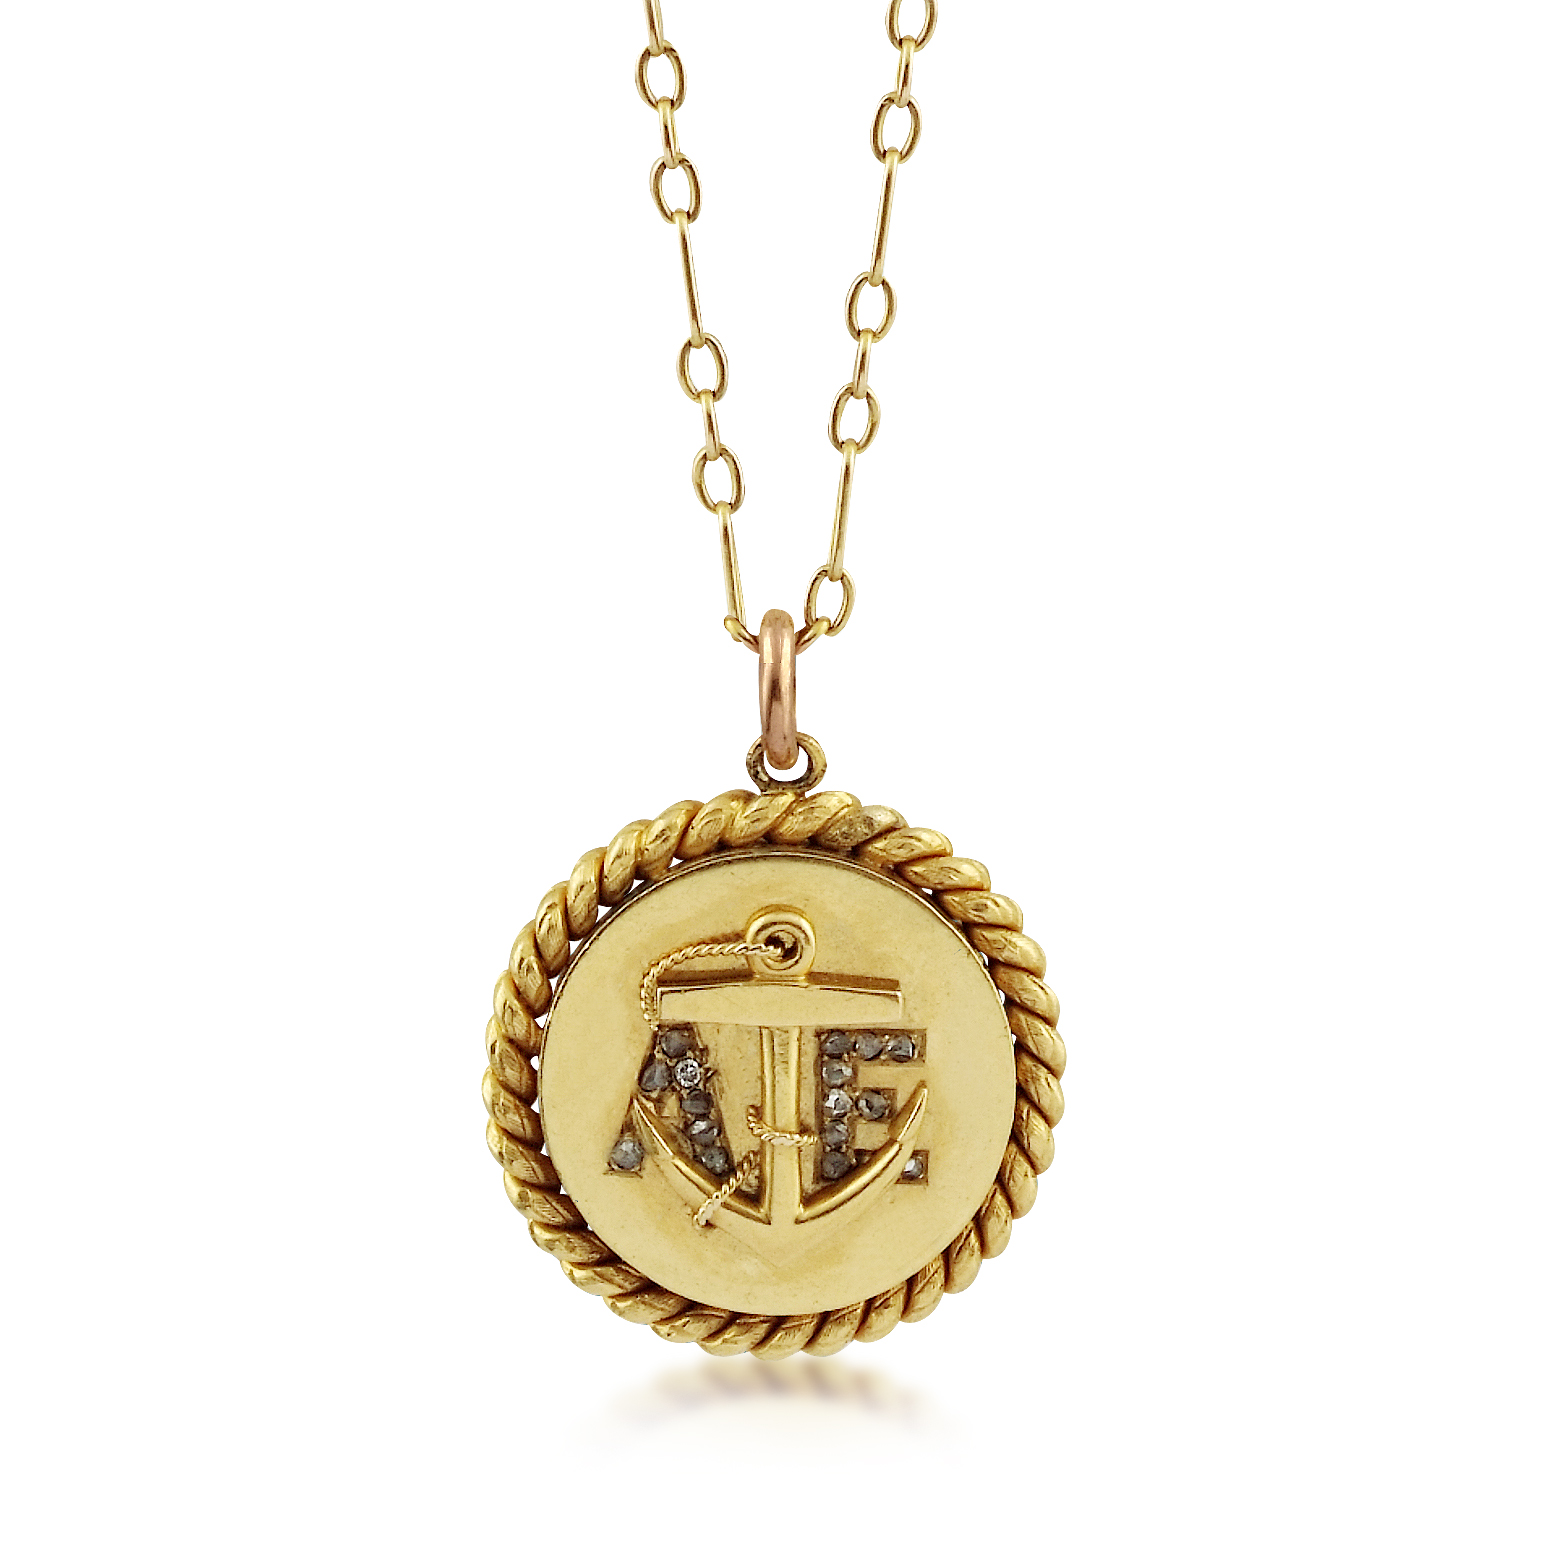 Antique-18ct-yellow-gold-Royal-and-Naval-pendant-SN16.jpg